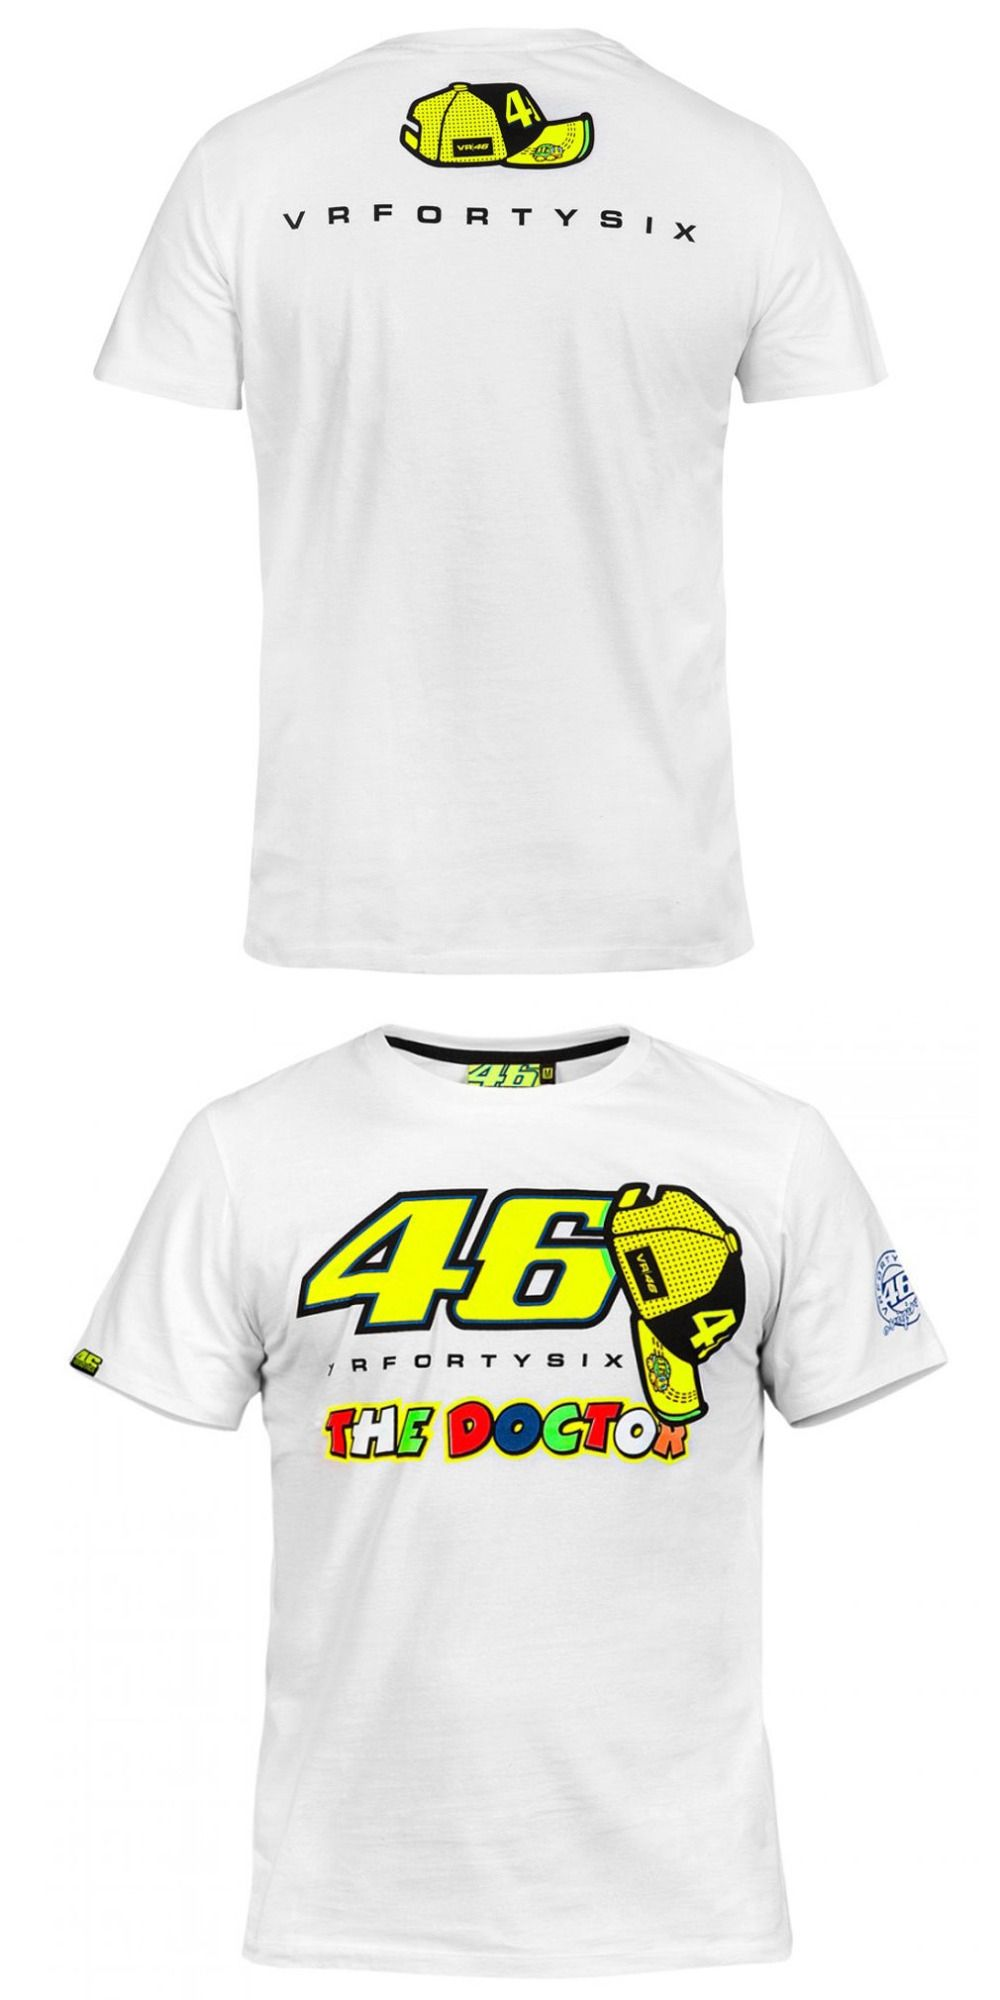 9b619e8e Valentino Rossi VR46 46 The Doctor Moto GP Monza Cotton T-shirt White